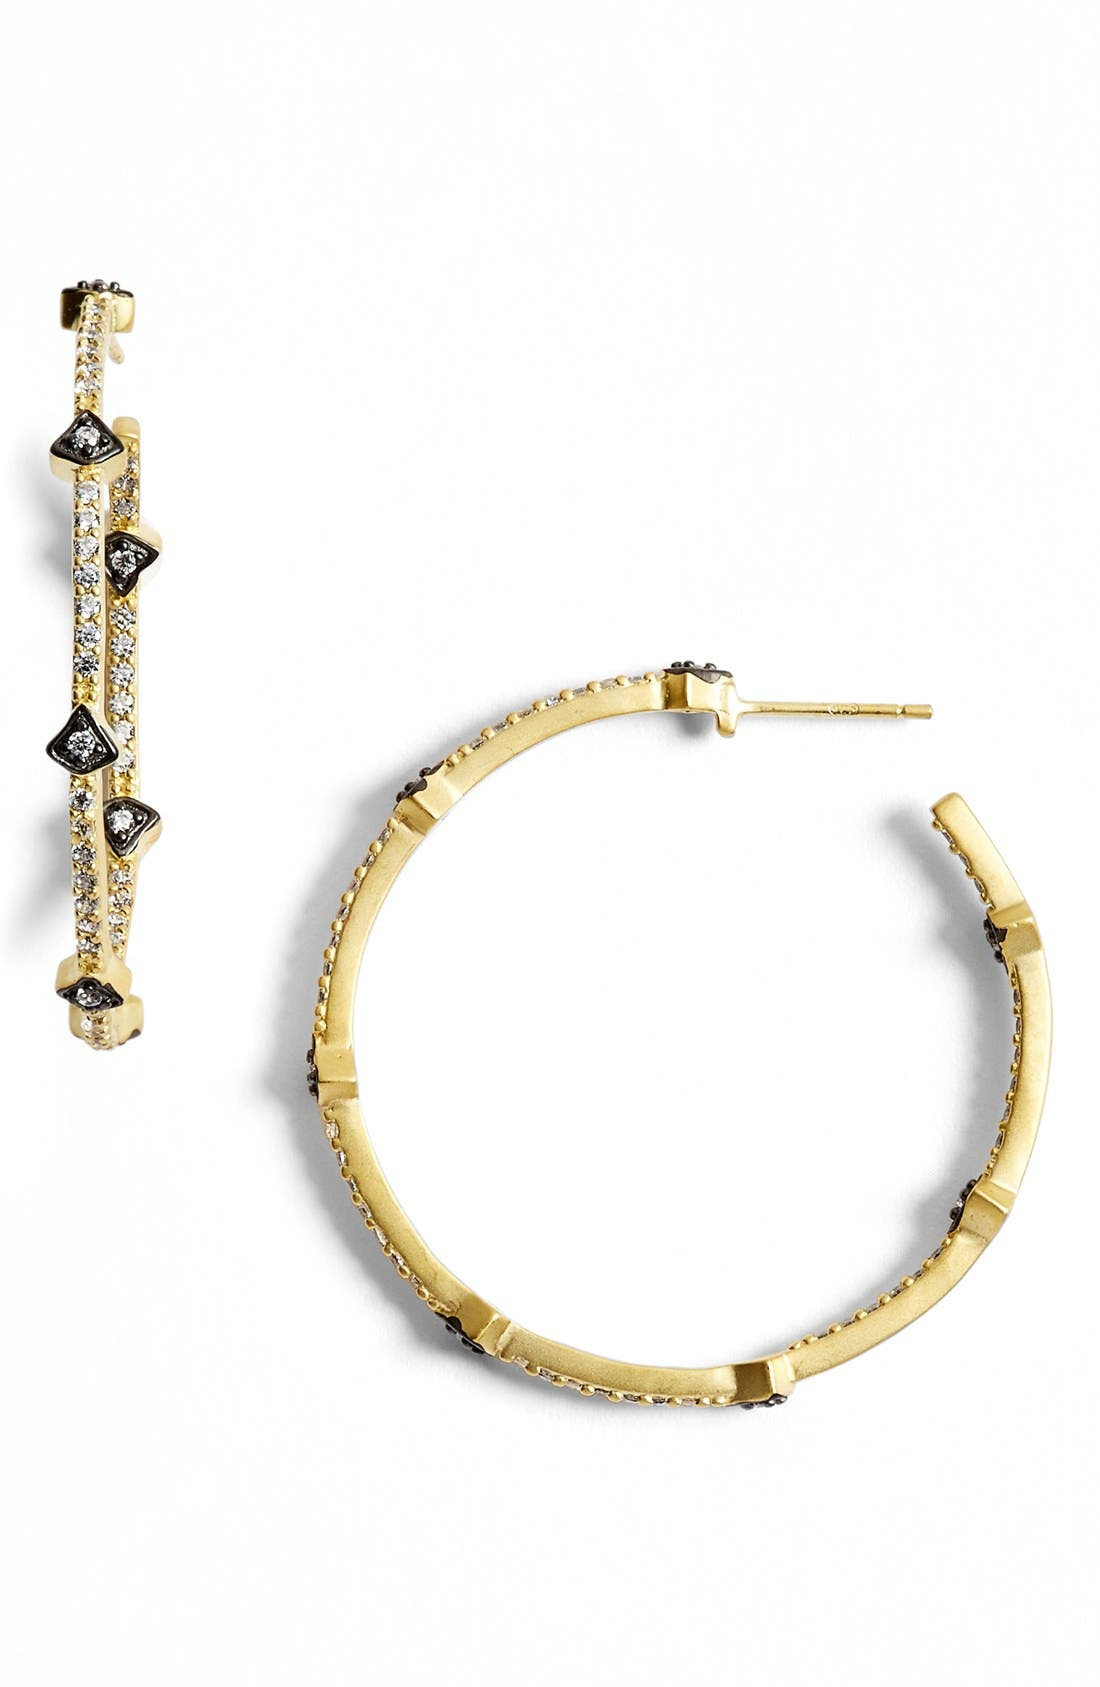 FREIDA ROTHMAN 'Metropolitan' Inside Out Hoop Earrings